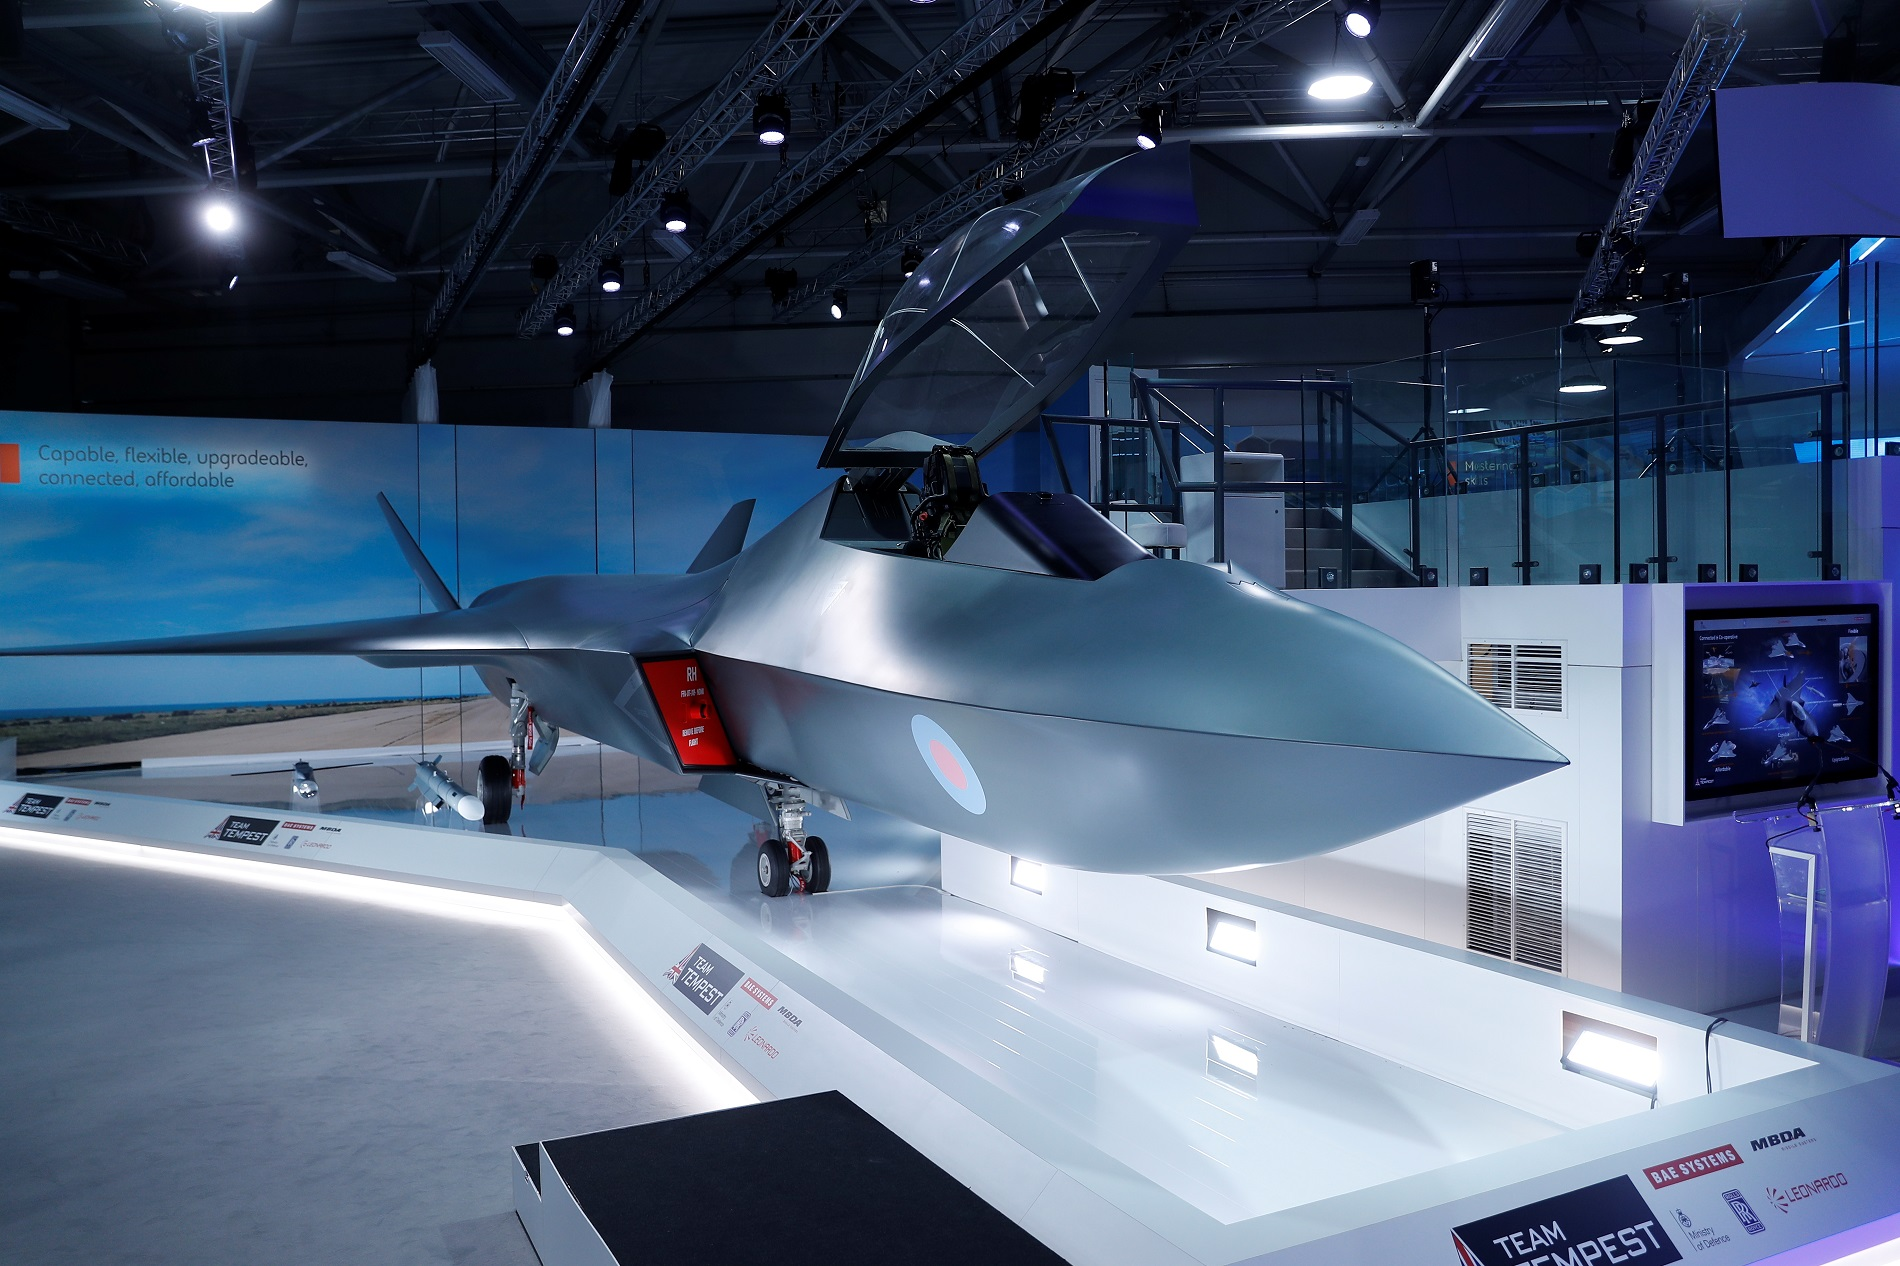 Forget the F-35 or F-22: Why 6th Generation Jet Fighters Could Be Revolutionary